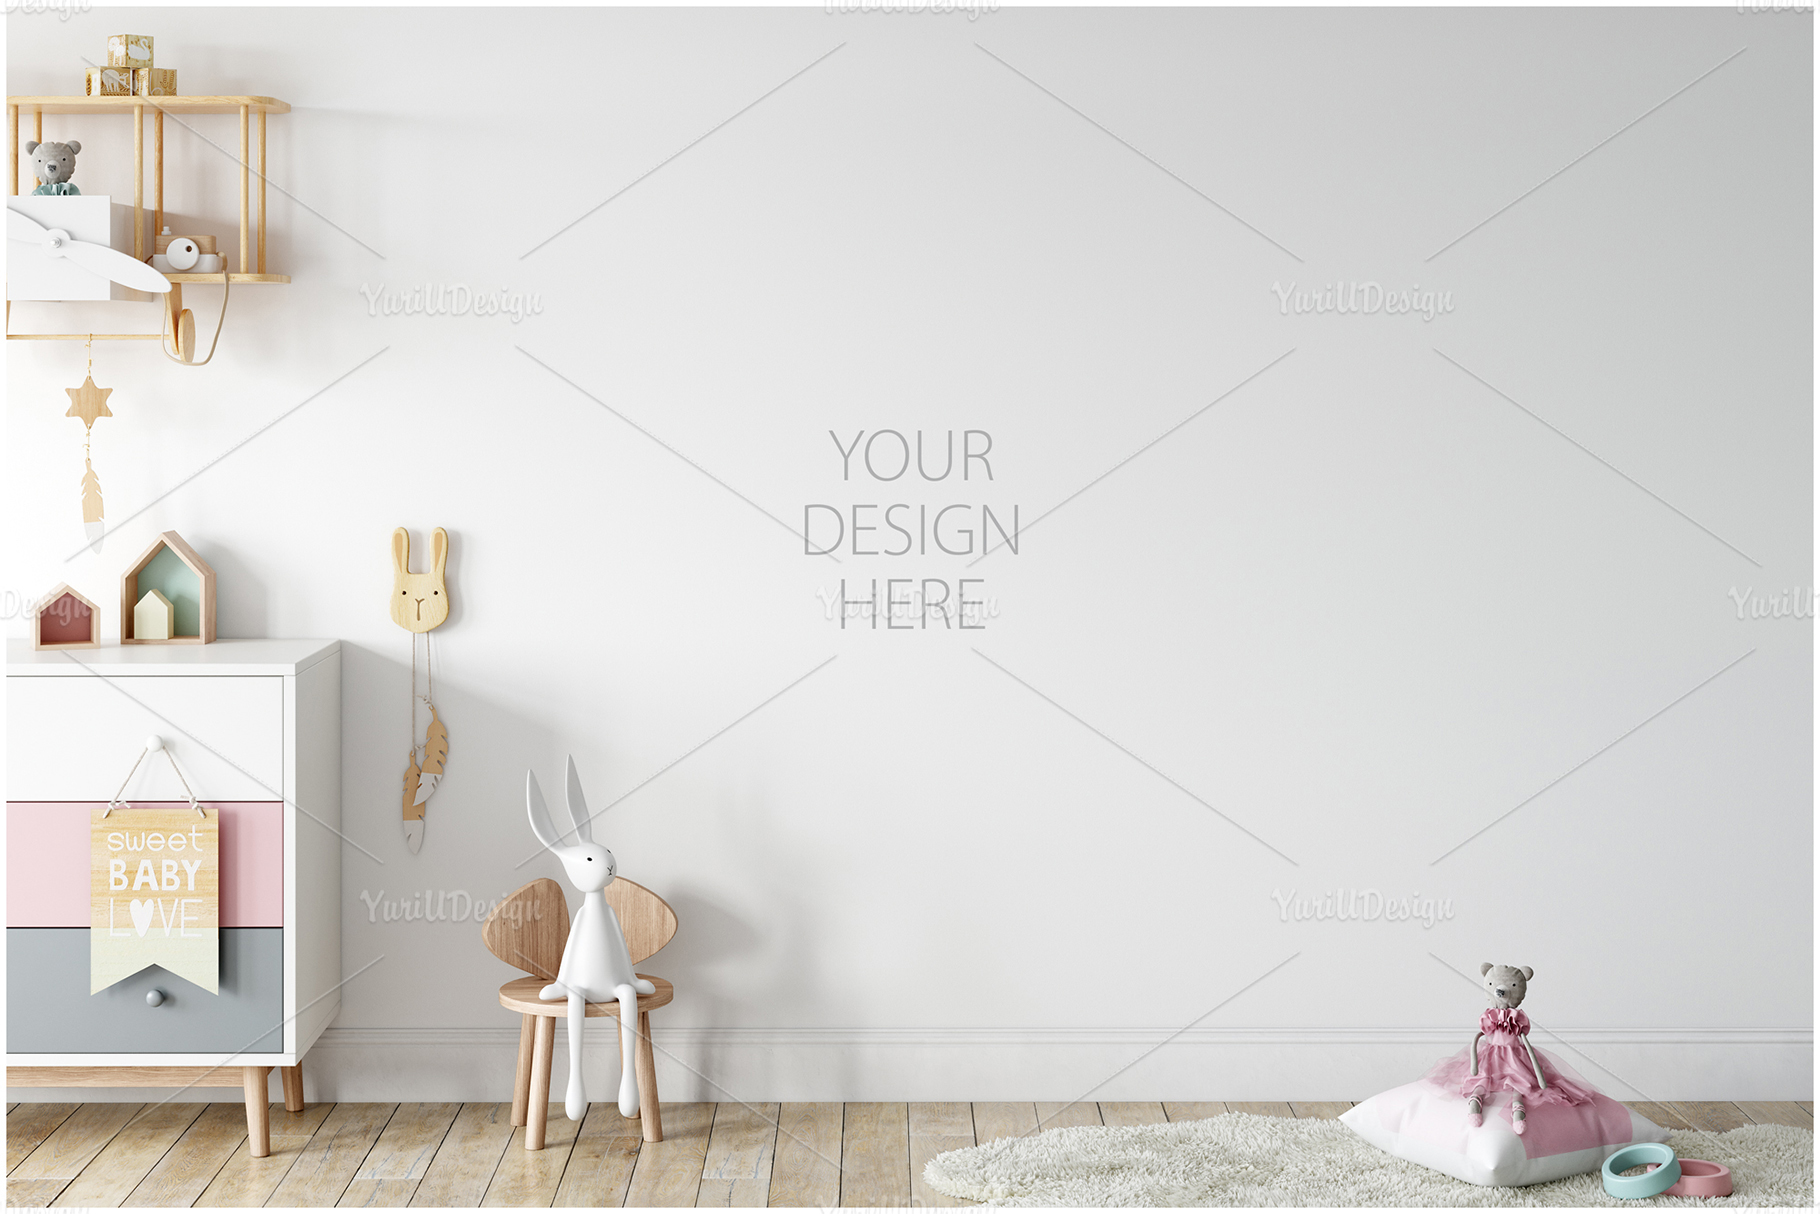 Kids Frames & Wall Mockup Bundle - 5 example image 25